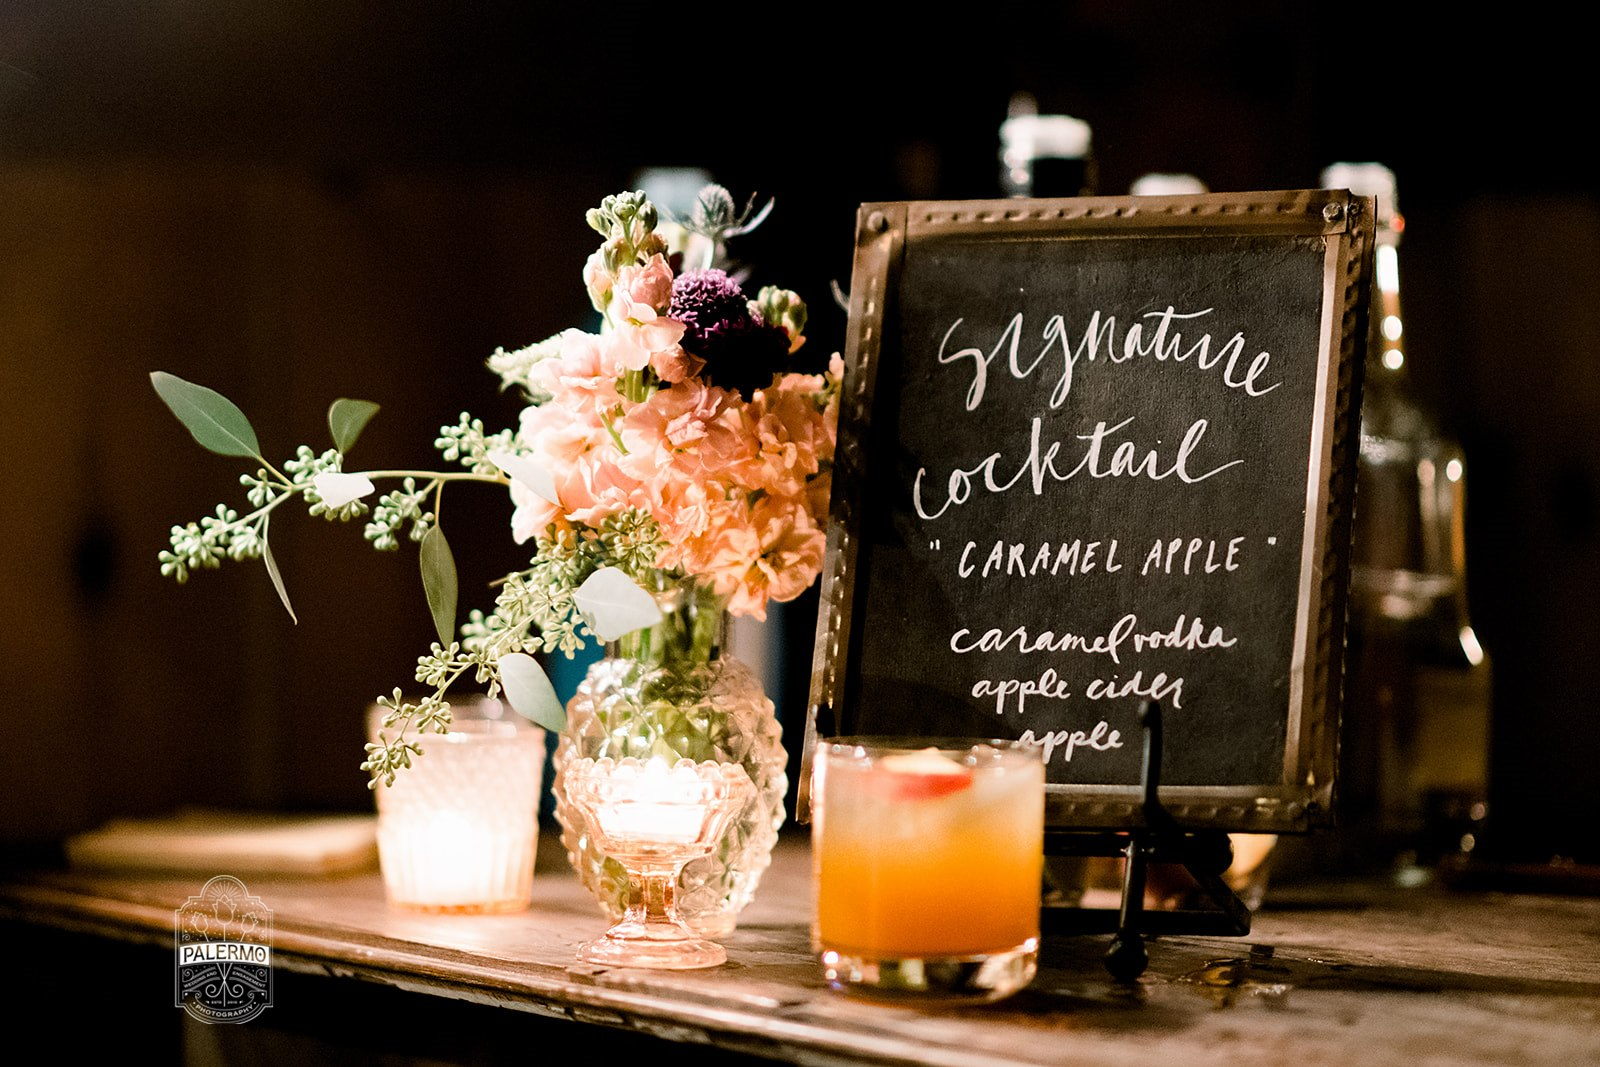 Wedding signature drinks on wedding sign for rustic fall barn wedding in Pittsburgh, PA planned by Exhale Events. Find more wedding inspiration at exhale-events.com!